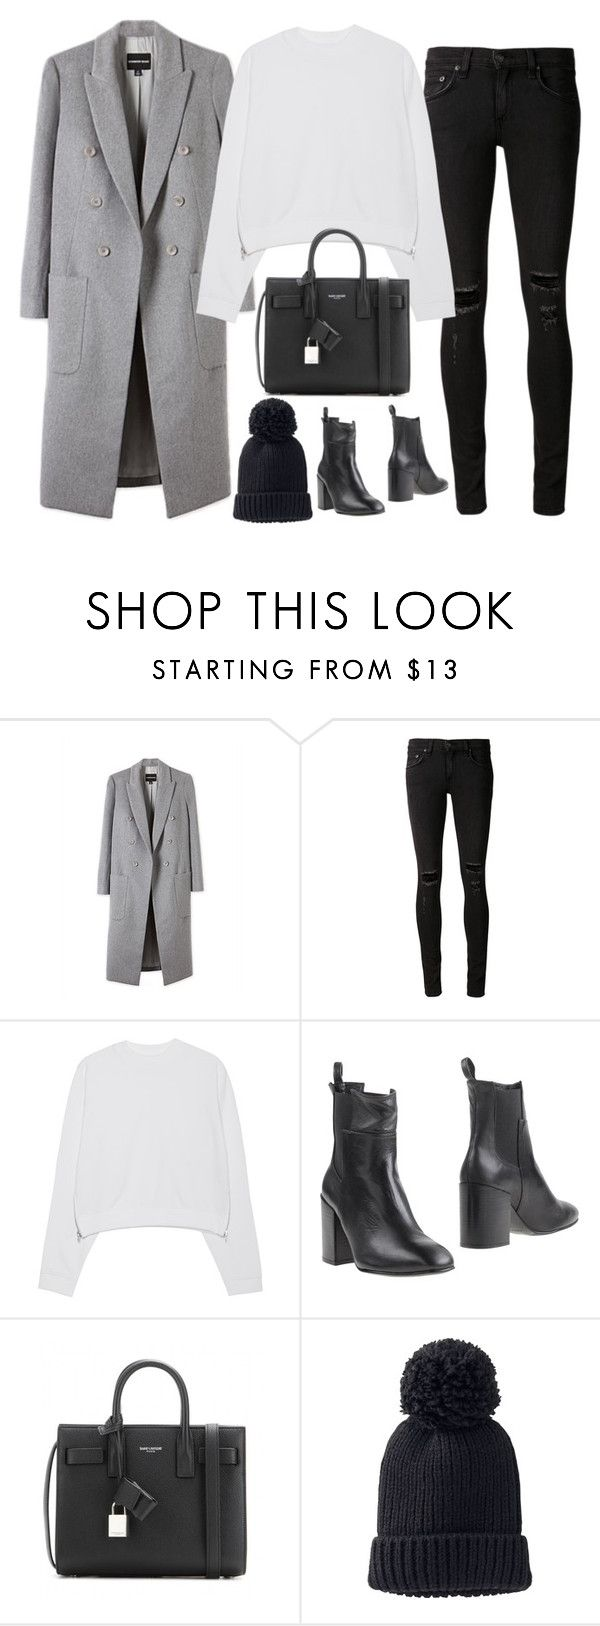 """Untitled#4169"" by fashionnfacts ❤ liked on Polyvore featuring rag & bone/JEAN, Acne Studios, Eqüitare, Yves Saint Laurent and Uniqlo"